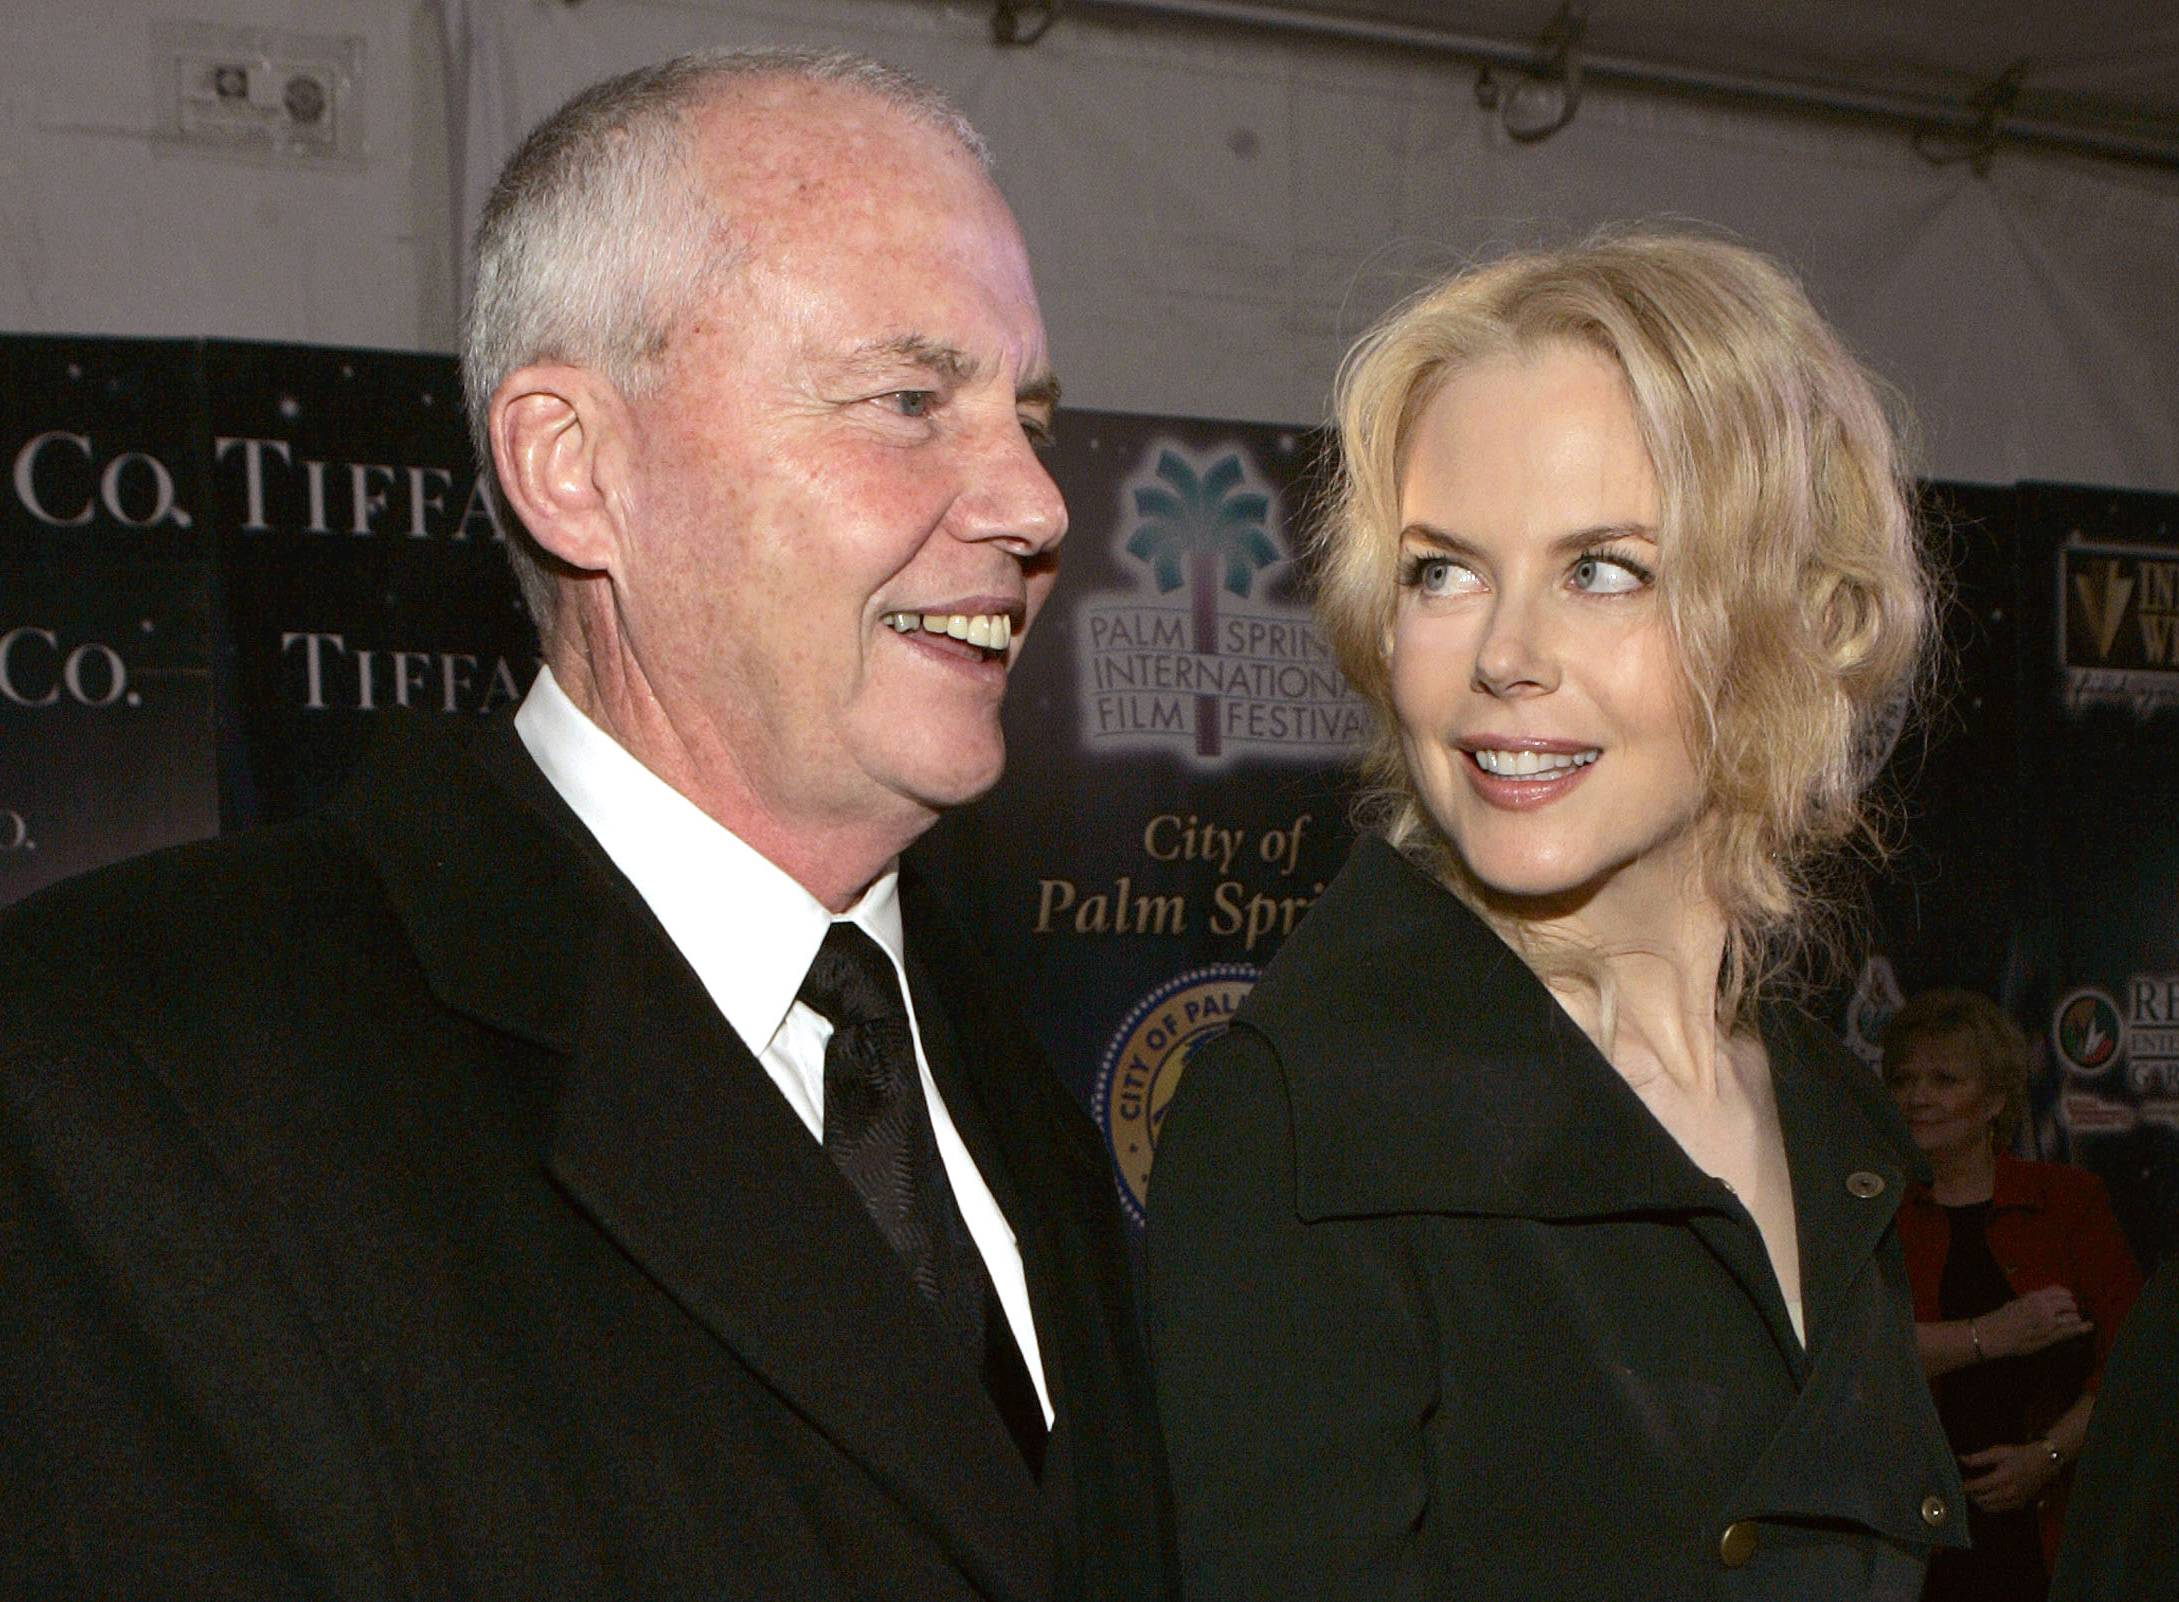 Psychologist Anthony Kidman, left, and his daughter, actress Nicole Kidman, arrive at the Palm Springs International Film Festival in Palm Springs, Calif. Actress Nicole Kidman on Tuesday broke her public silence since the death of her father more than two weeks ago by sharing her heartbreak and thanking well-wishers for their comforting thoughts and prayers.